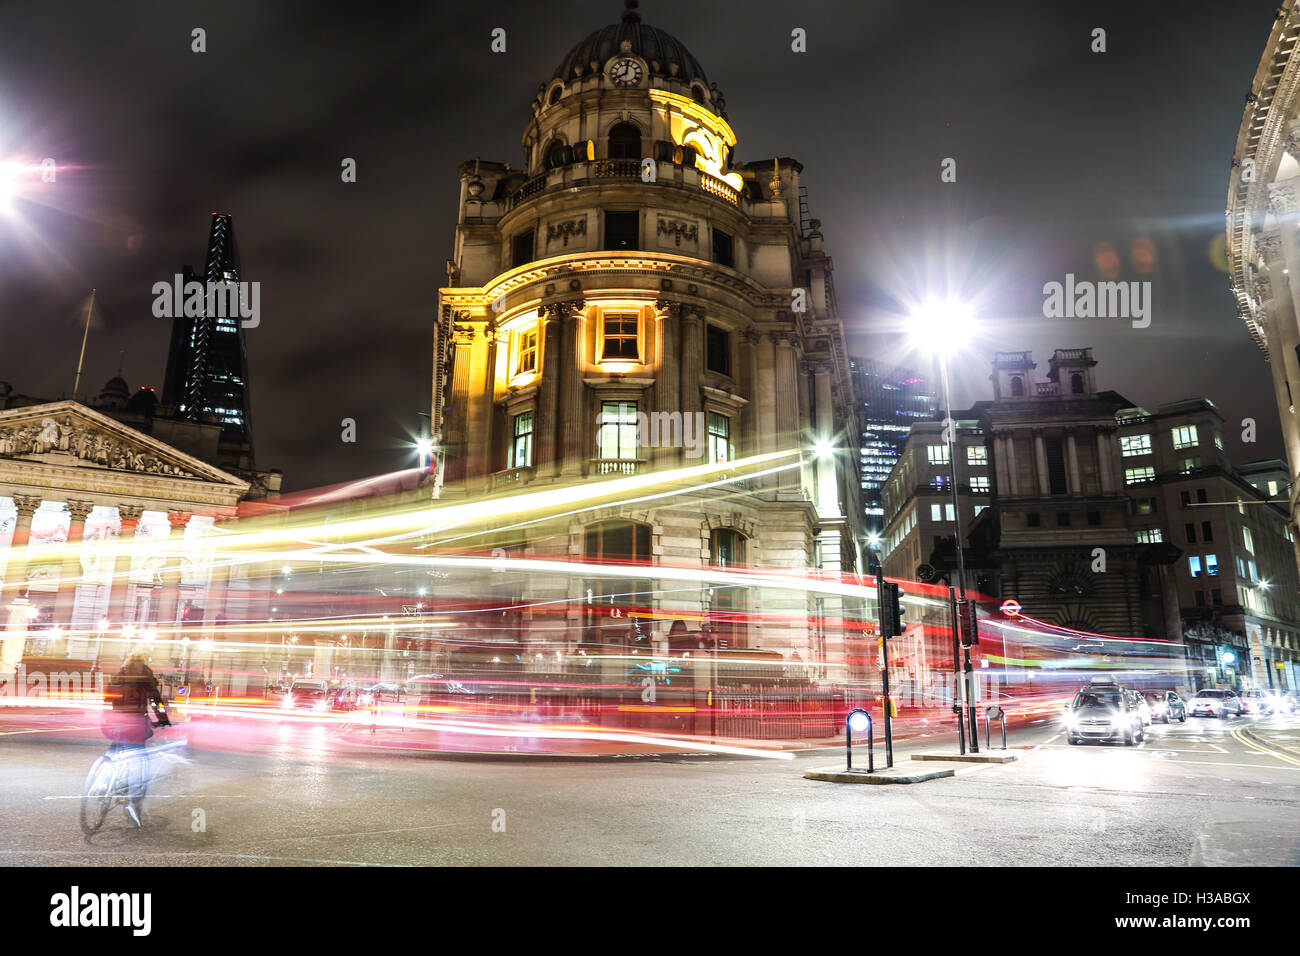 Bank and Monument Station at night, with a cyclist making his way through the streaks of traffic lights. - Stock Image